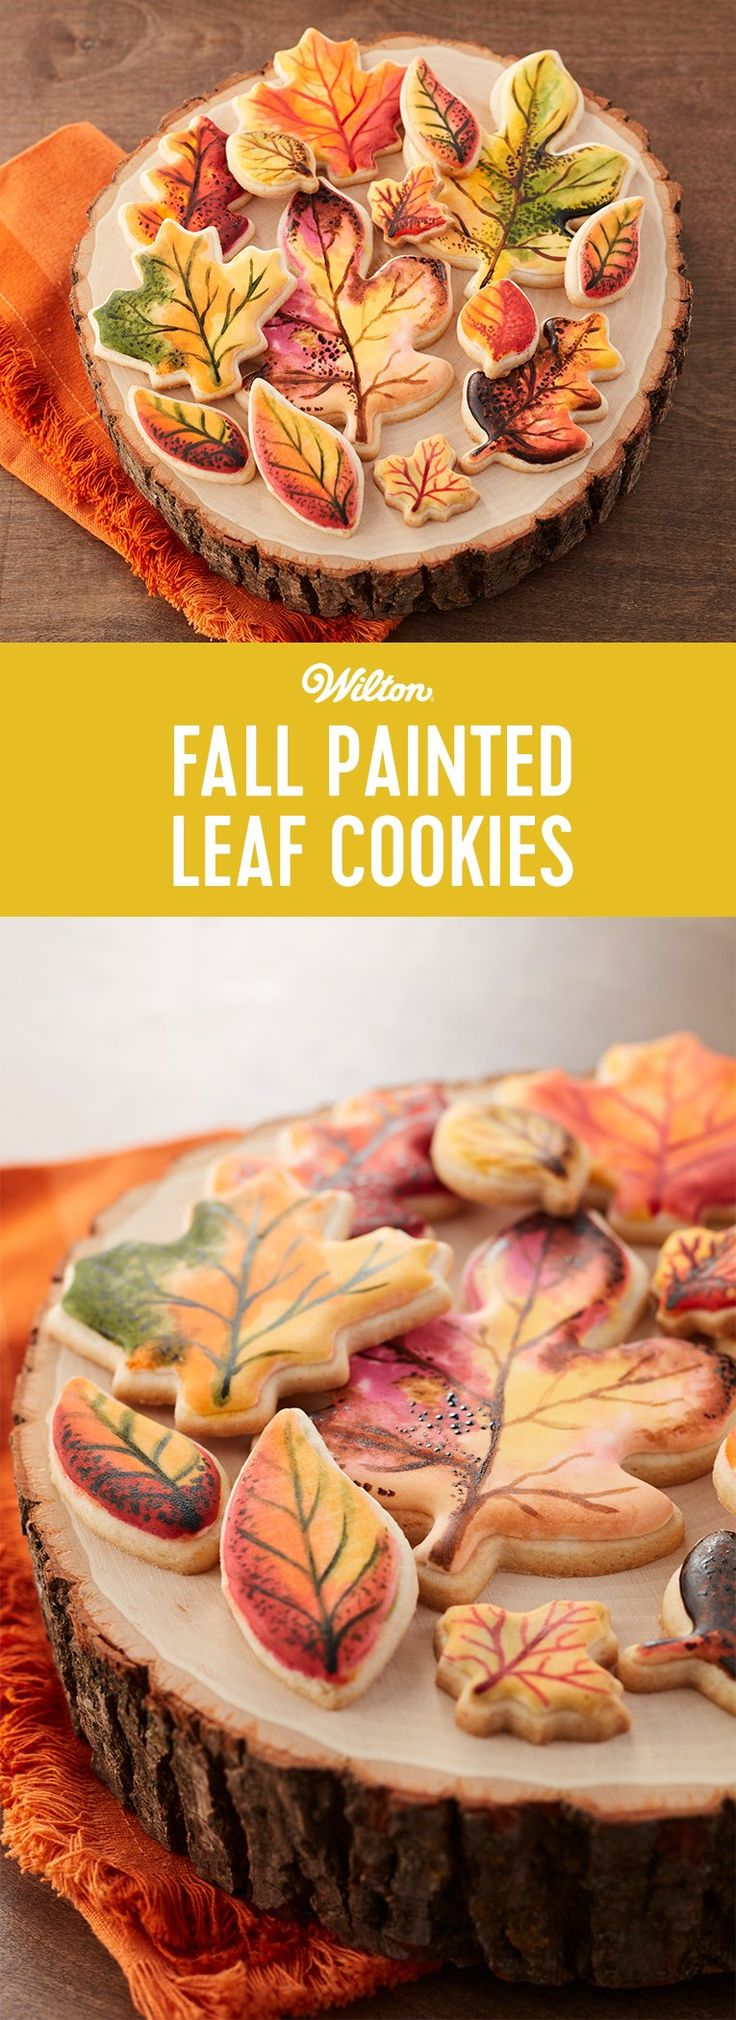 "The time is right to bake and create the prettiest ""painted"" leaf cookies that match the falling leaves of the season. Use the fun variety of cookie cutter shapes in the sets and your favorite fall colors to paint directly on the iced cookies. Serve them on rustic plates to show off their seasonal flair."